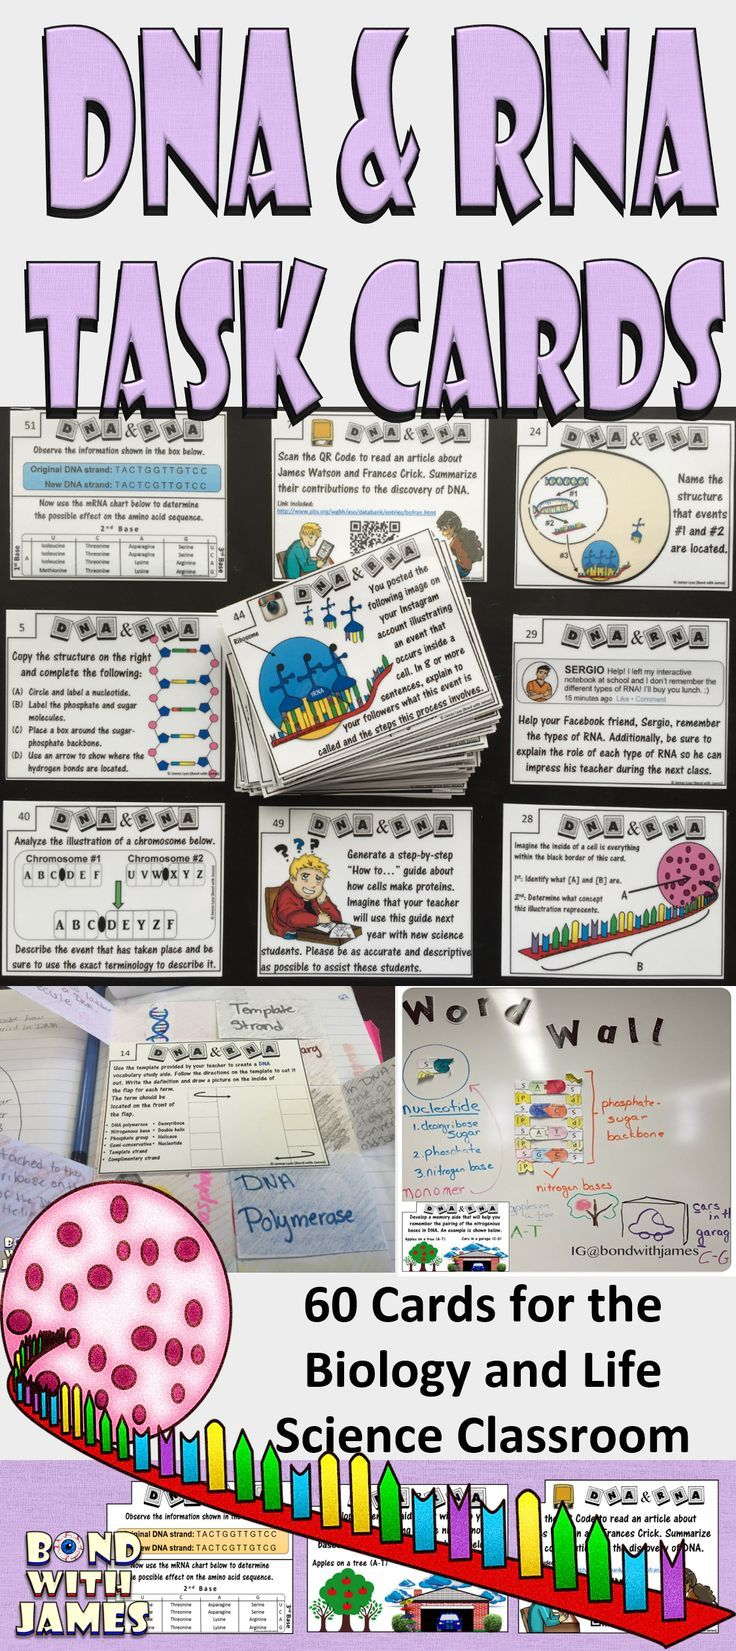 60 Task Cards for the biology/life science classroom. • DNA structure • DNA replication • Types of RNA • Transcription • Translation • Point Mutations • Chromosomal Mutations • Eukaryotic cell structure • Prokaryotic cell structure • Viral structure